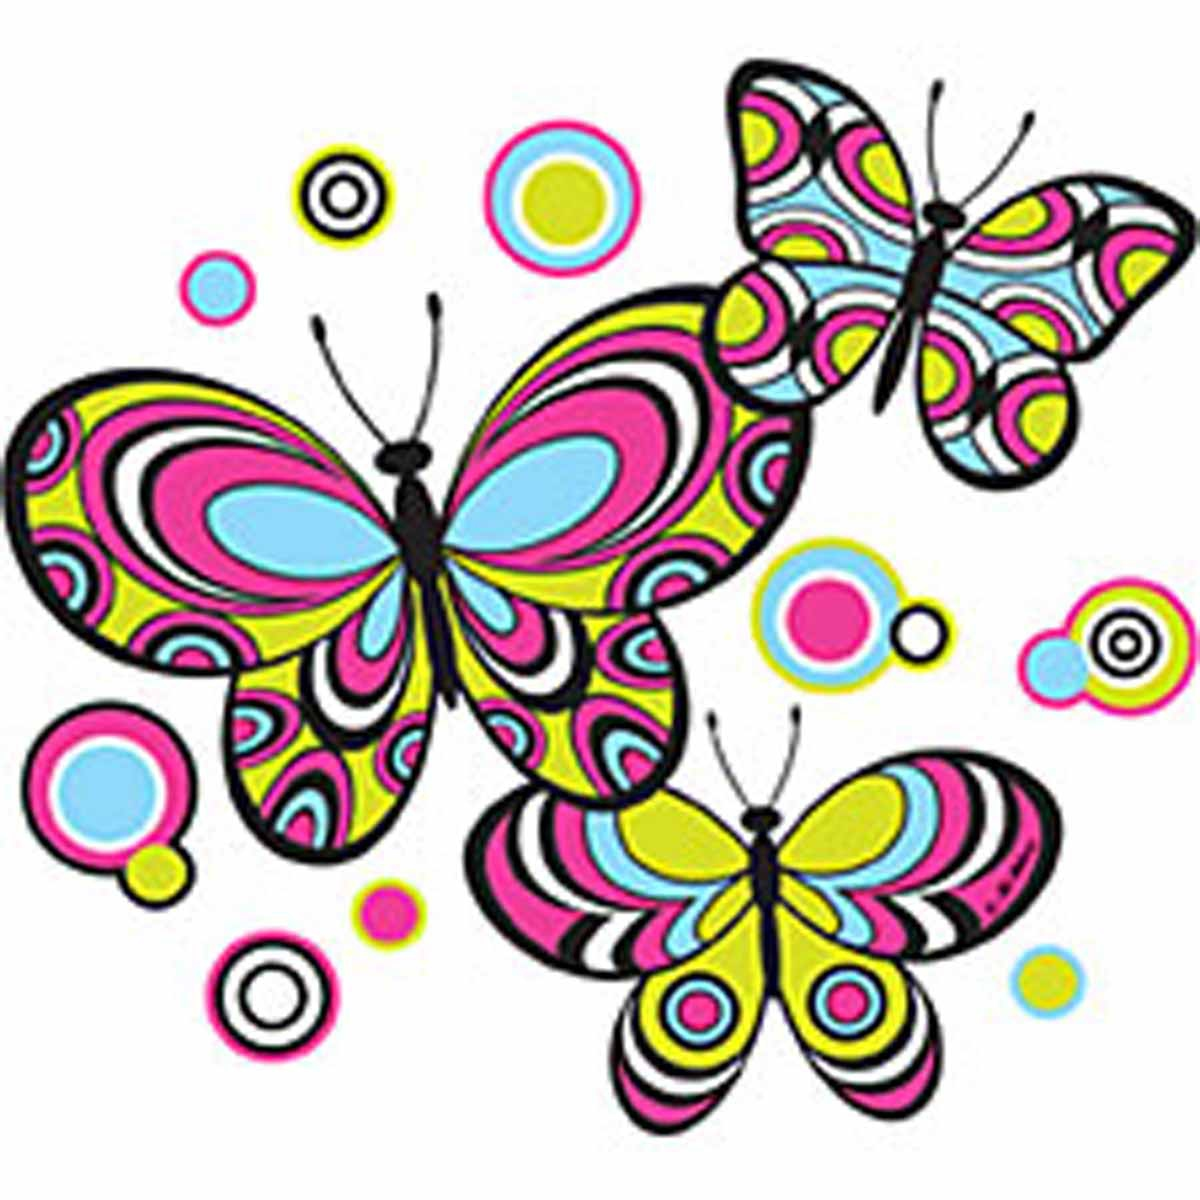 T-shirt femme manches courtes - Papillons multicolores  - Butterfly - 1112